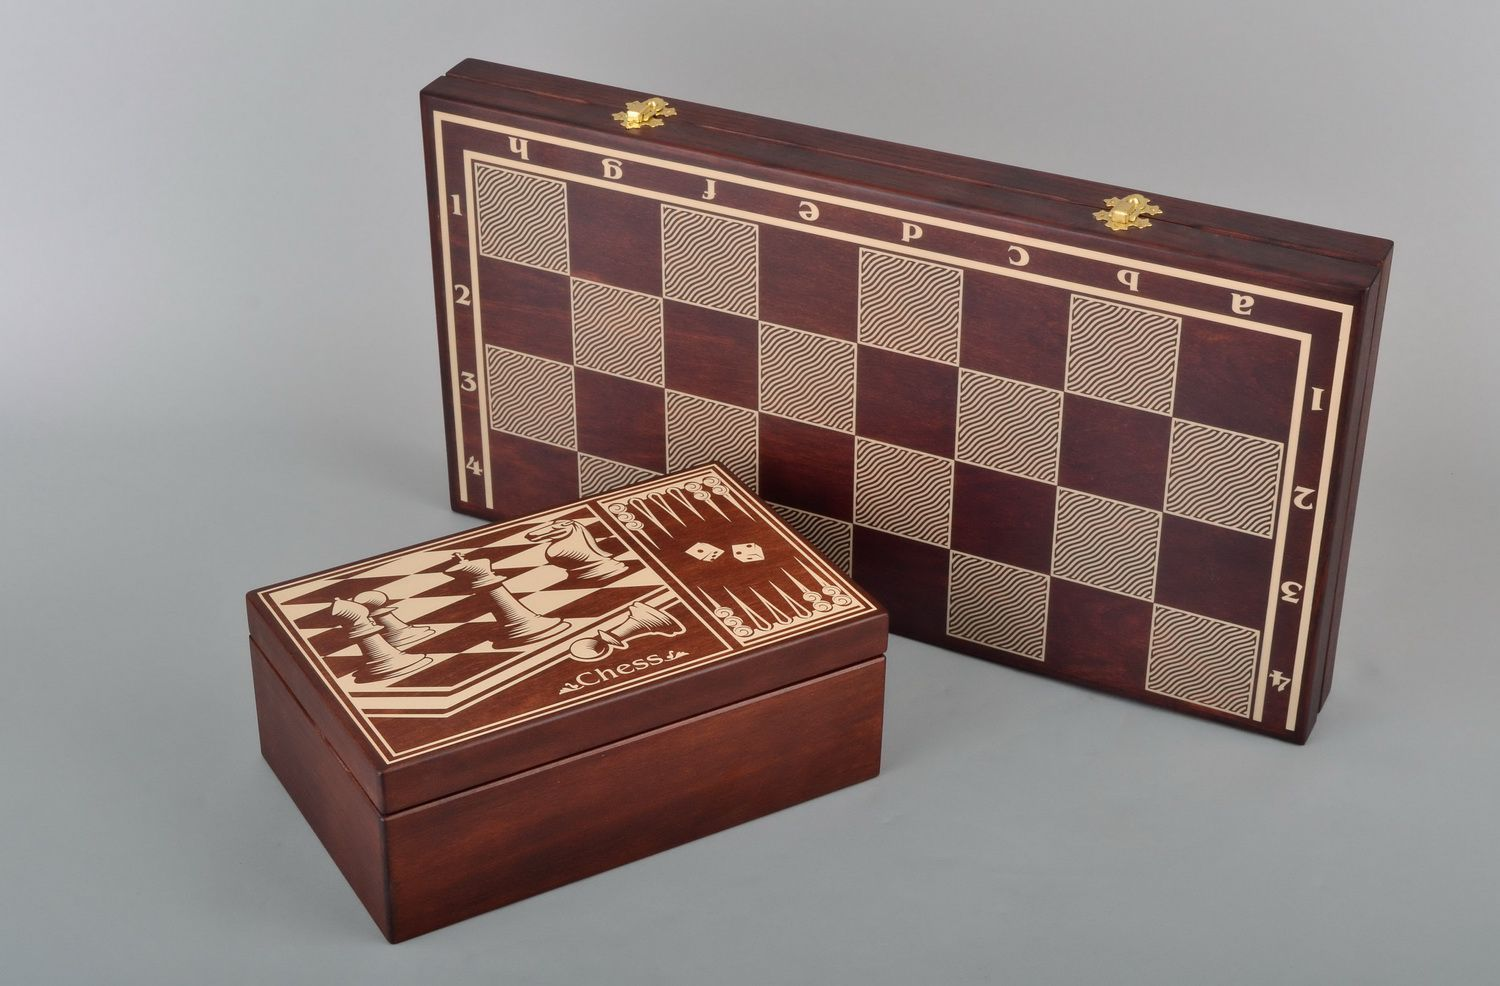 Wooden chess set 3 in 1 checkers, chess and backgammon photo 5